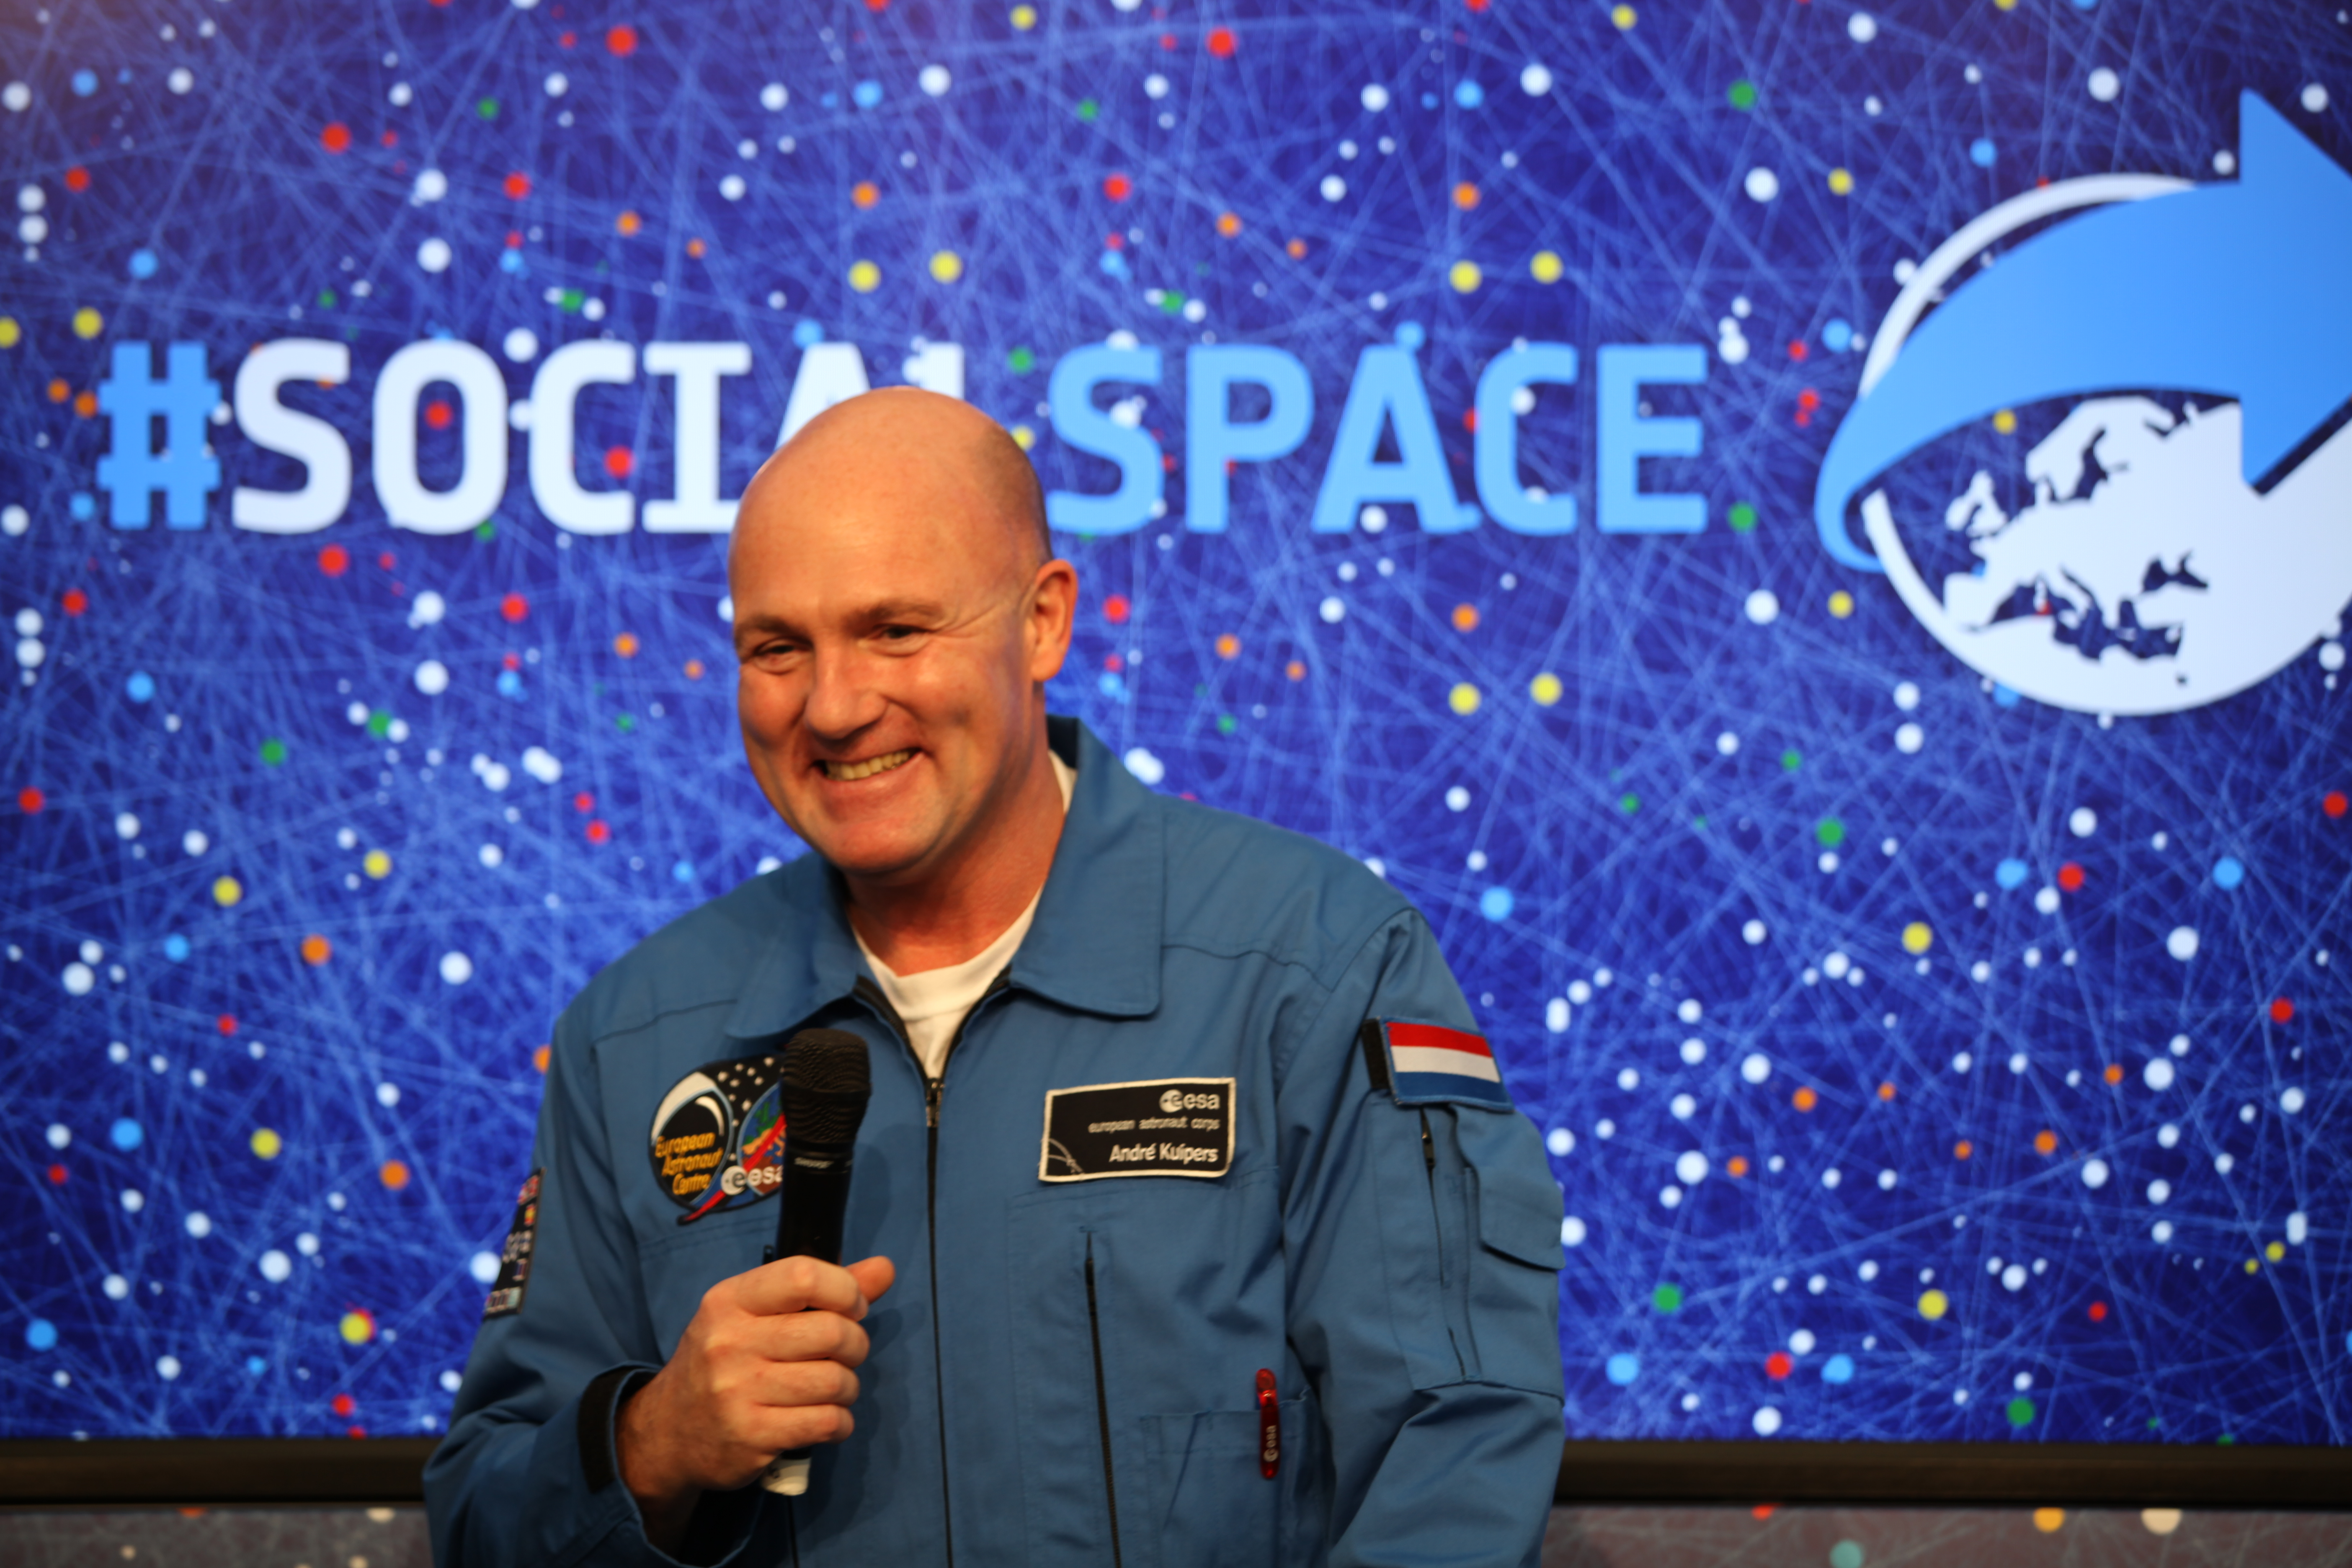 andre kuipers wiki